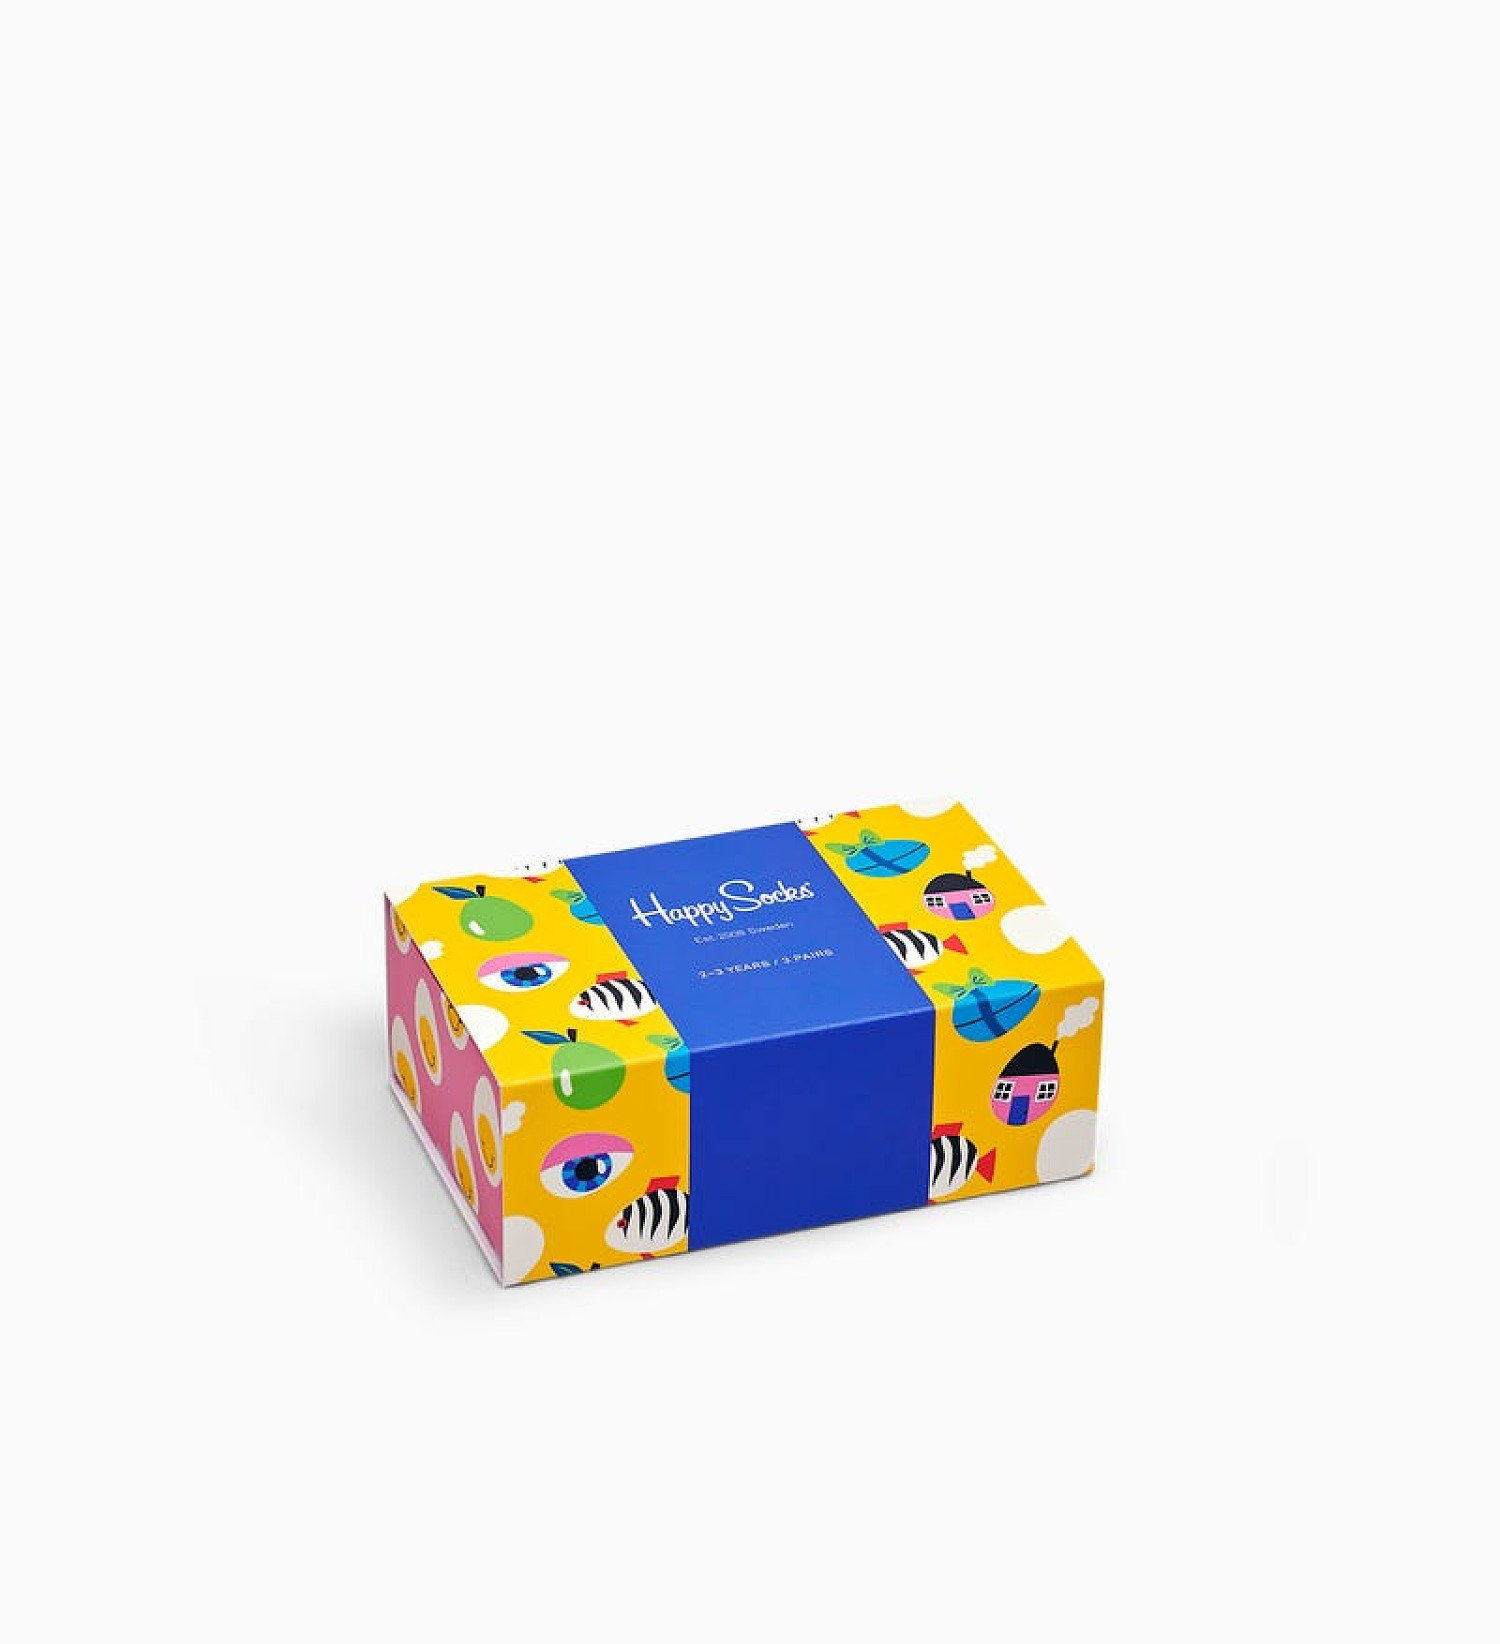 HAPPY EASTER - Kids Easter Gift Box 3-pack!